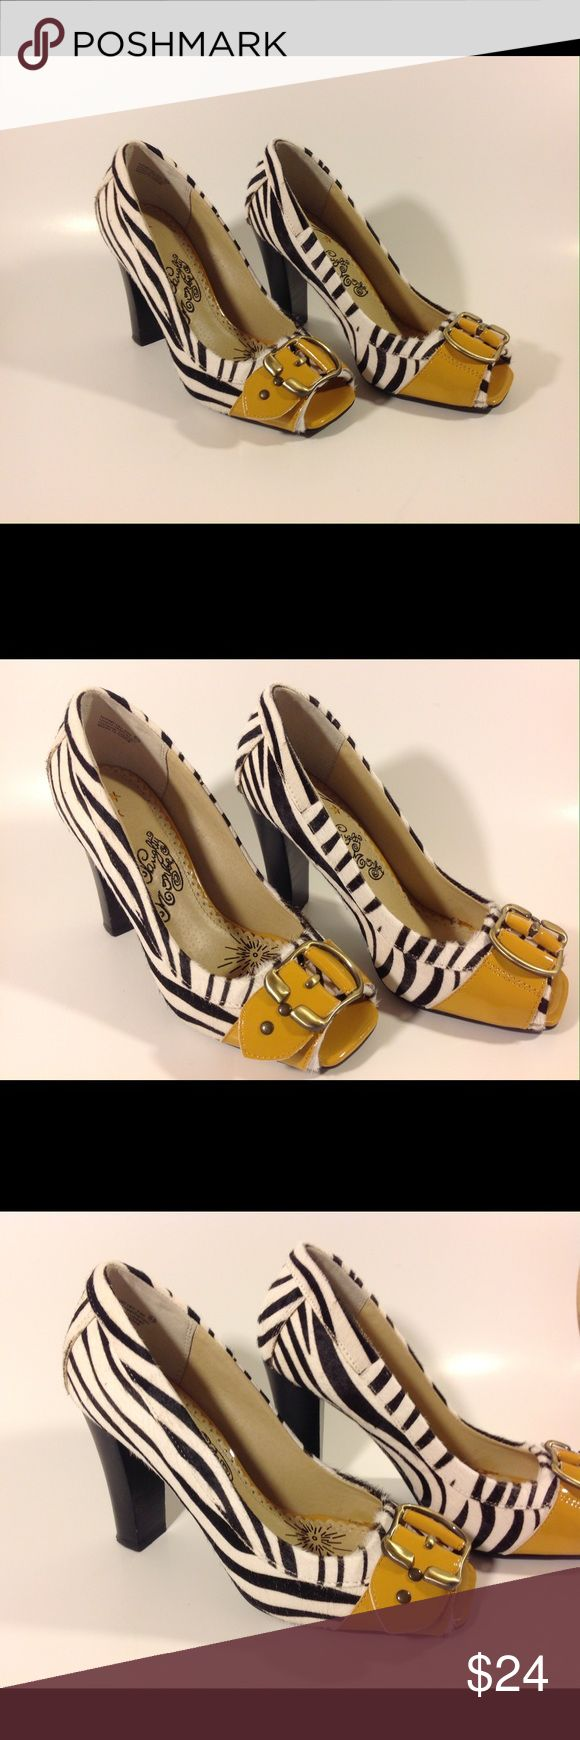 Naughty Monkey Funky Zebra Heels Too Cute Super cute naughty monkey zebra print heels.  These unique little shoes are in barely worn condition. naughty monkey Shoes Flats & Loafers